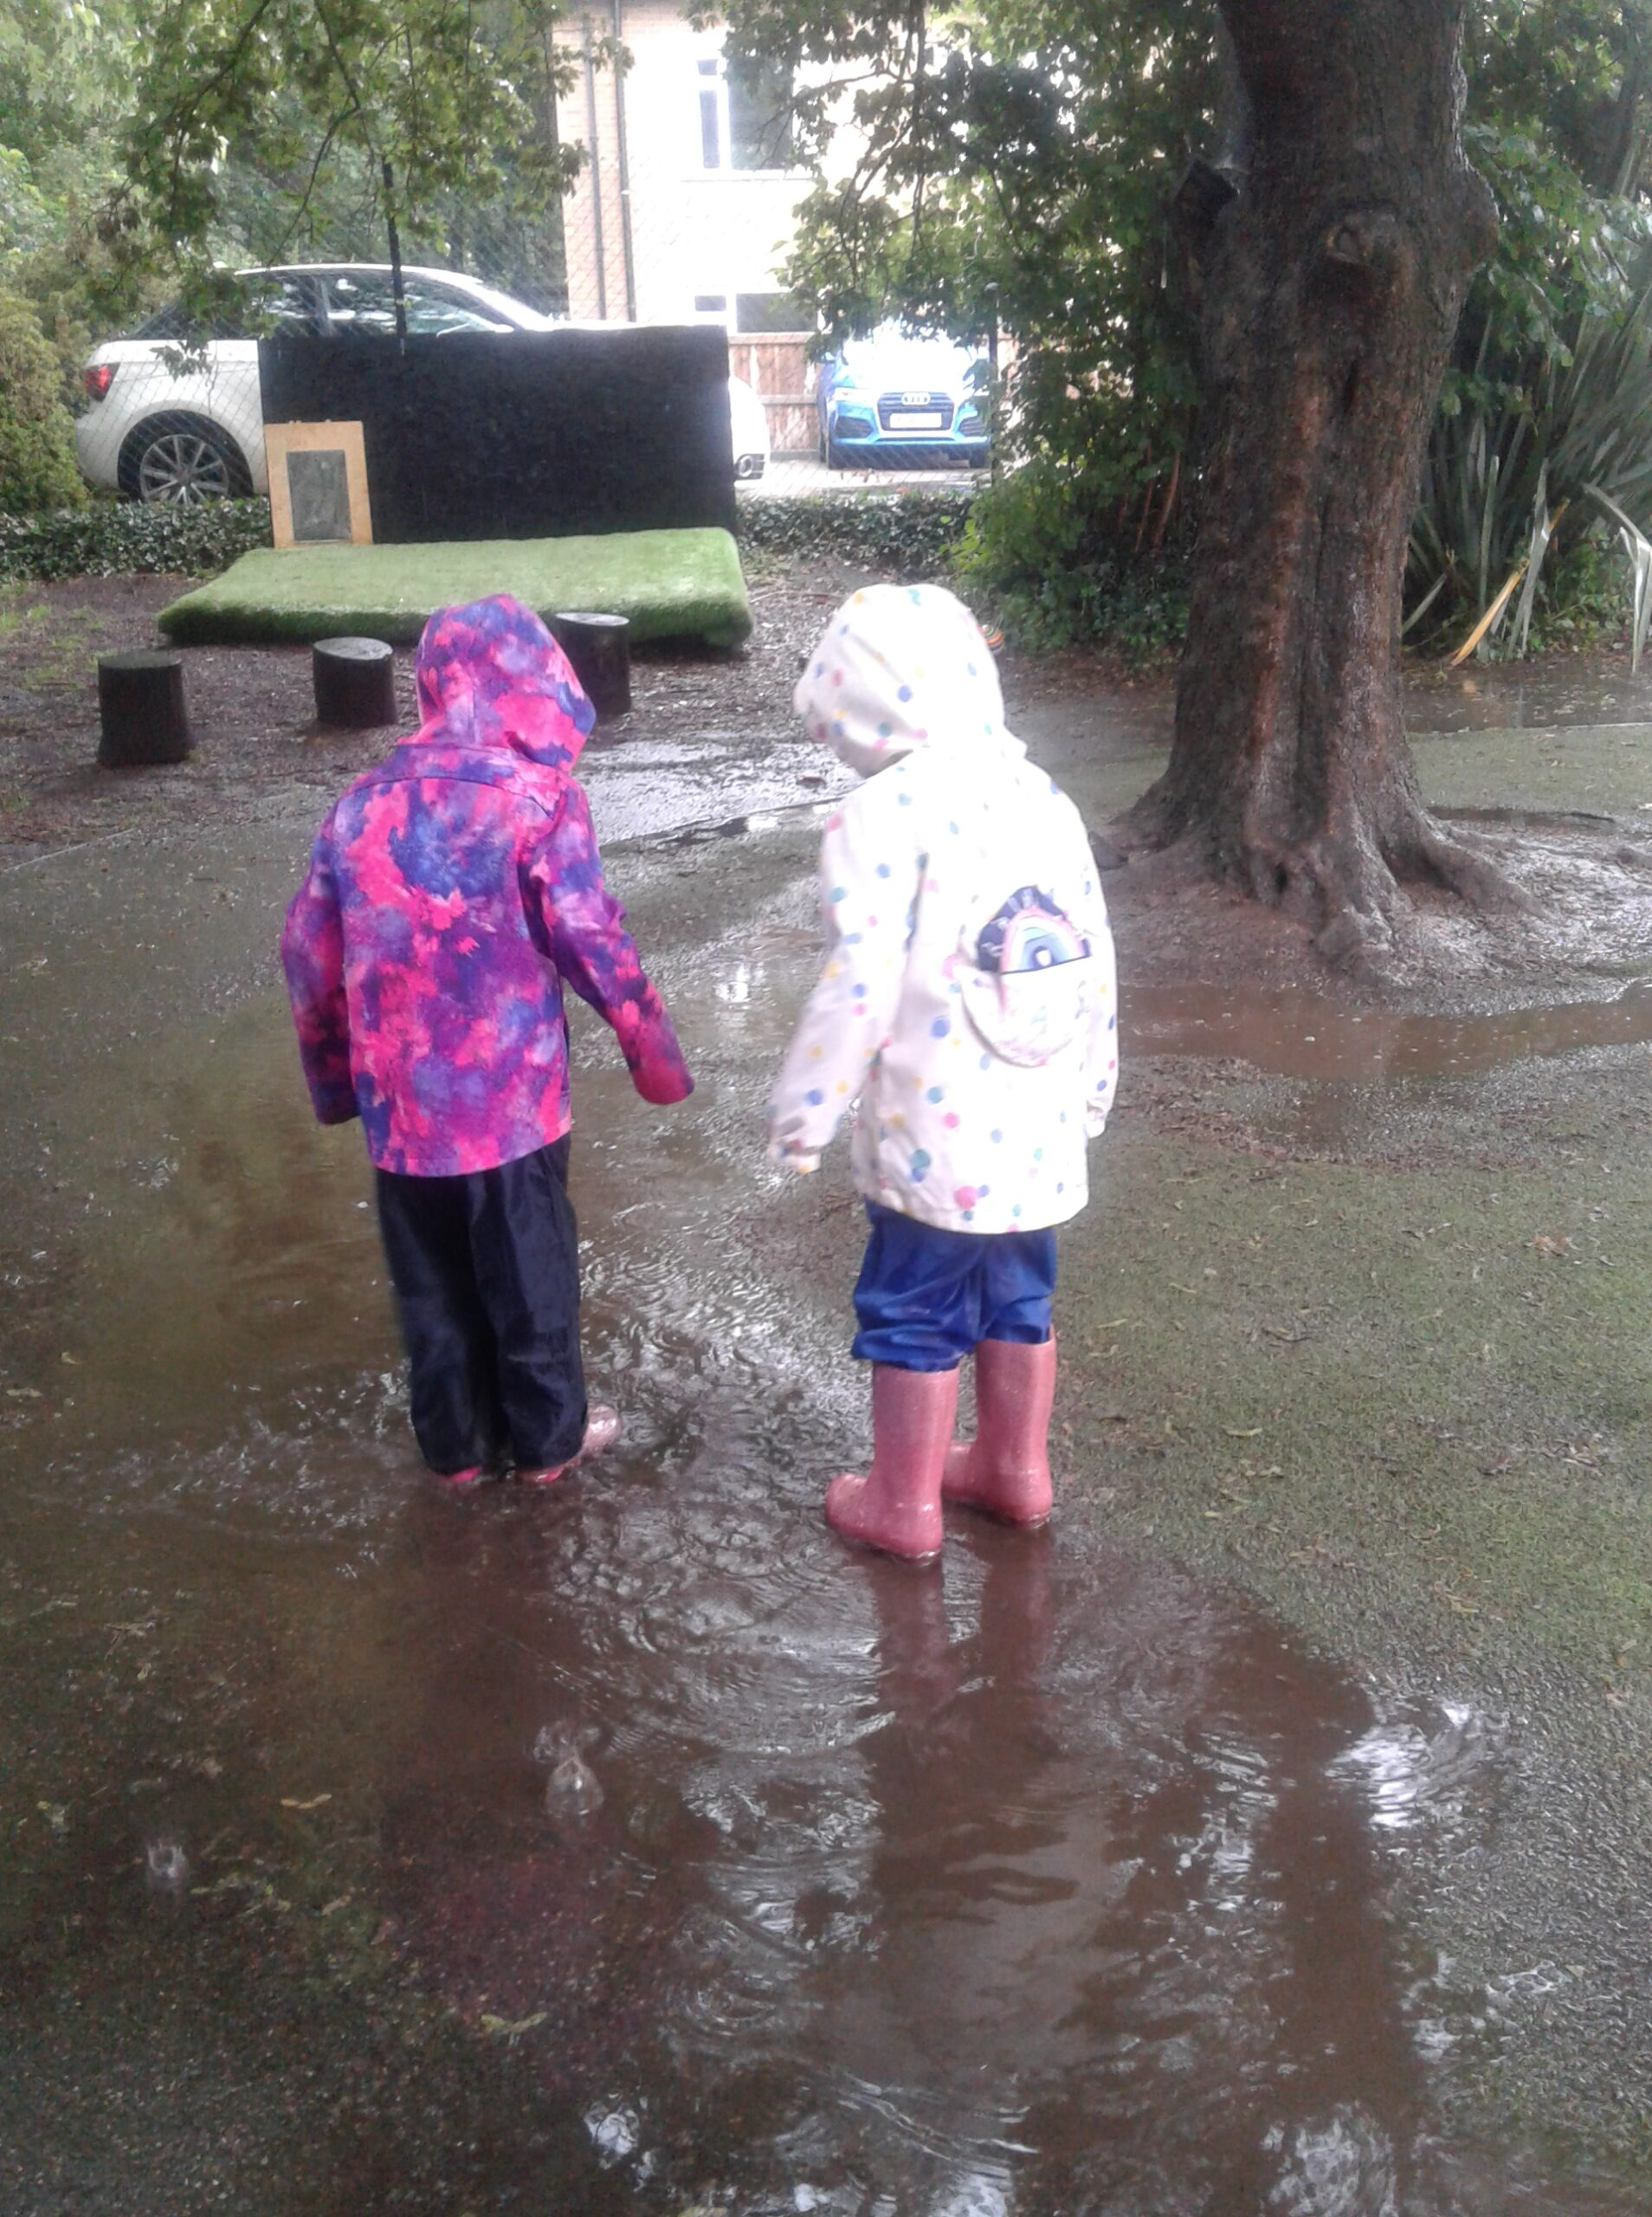 Its been such a busy week in our bubble, with lots of fun joining in with all sorts of different activities!